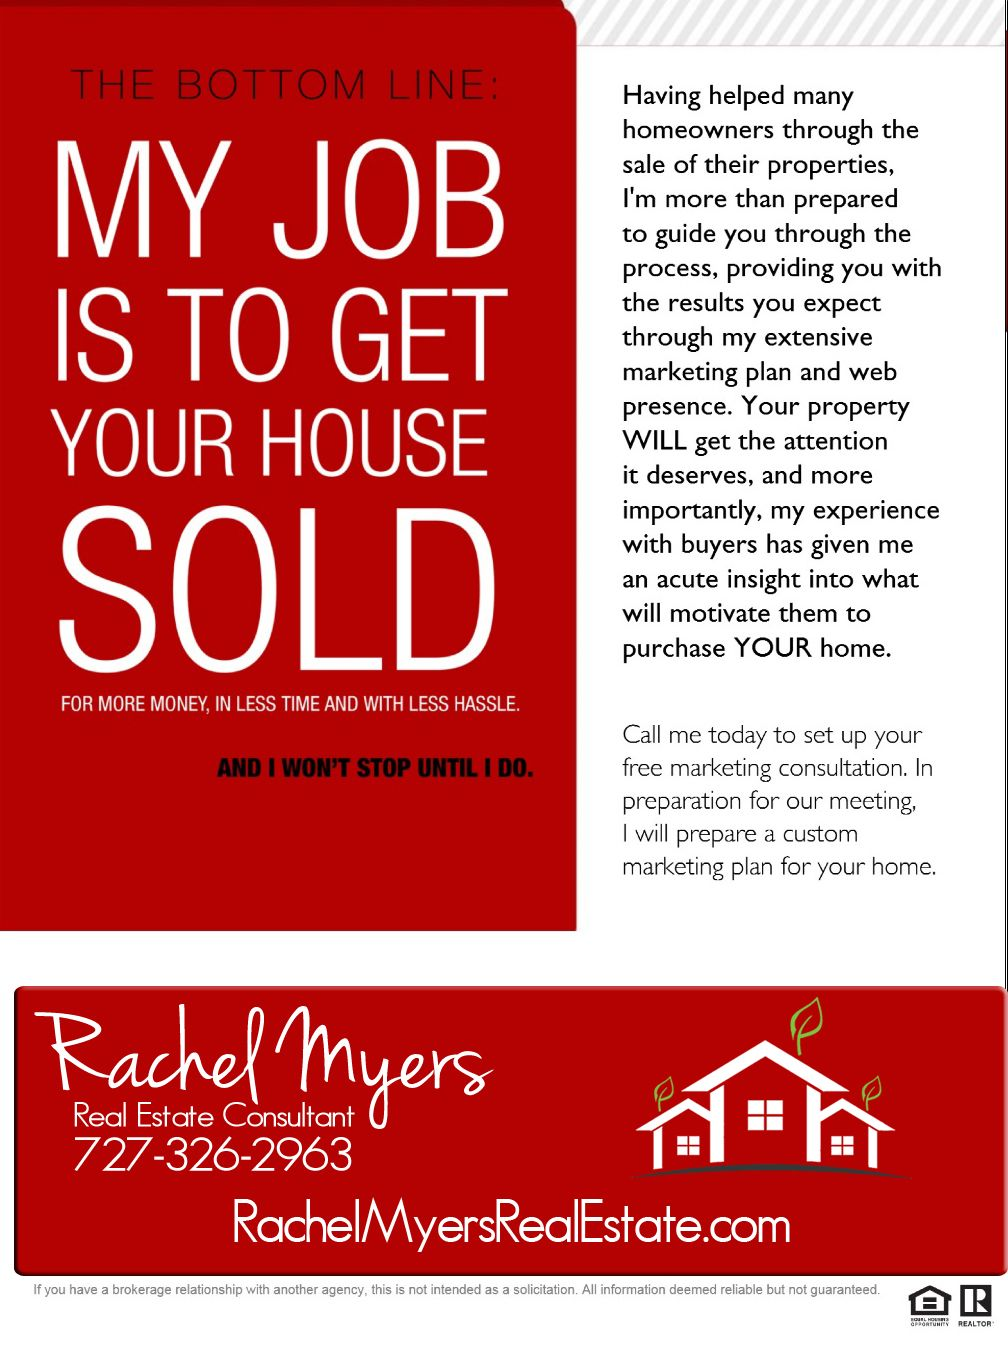 Its my job to get your house sold selling house how